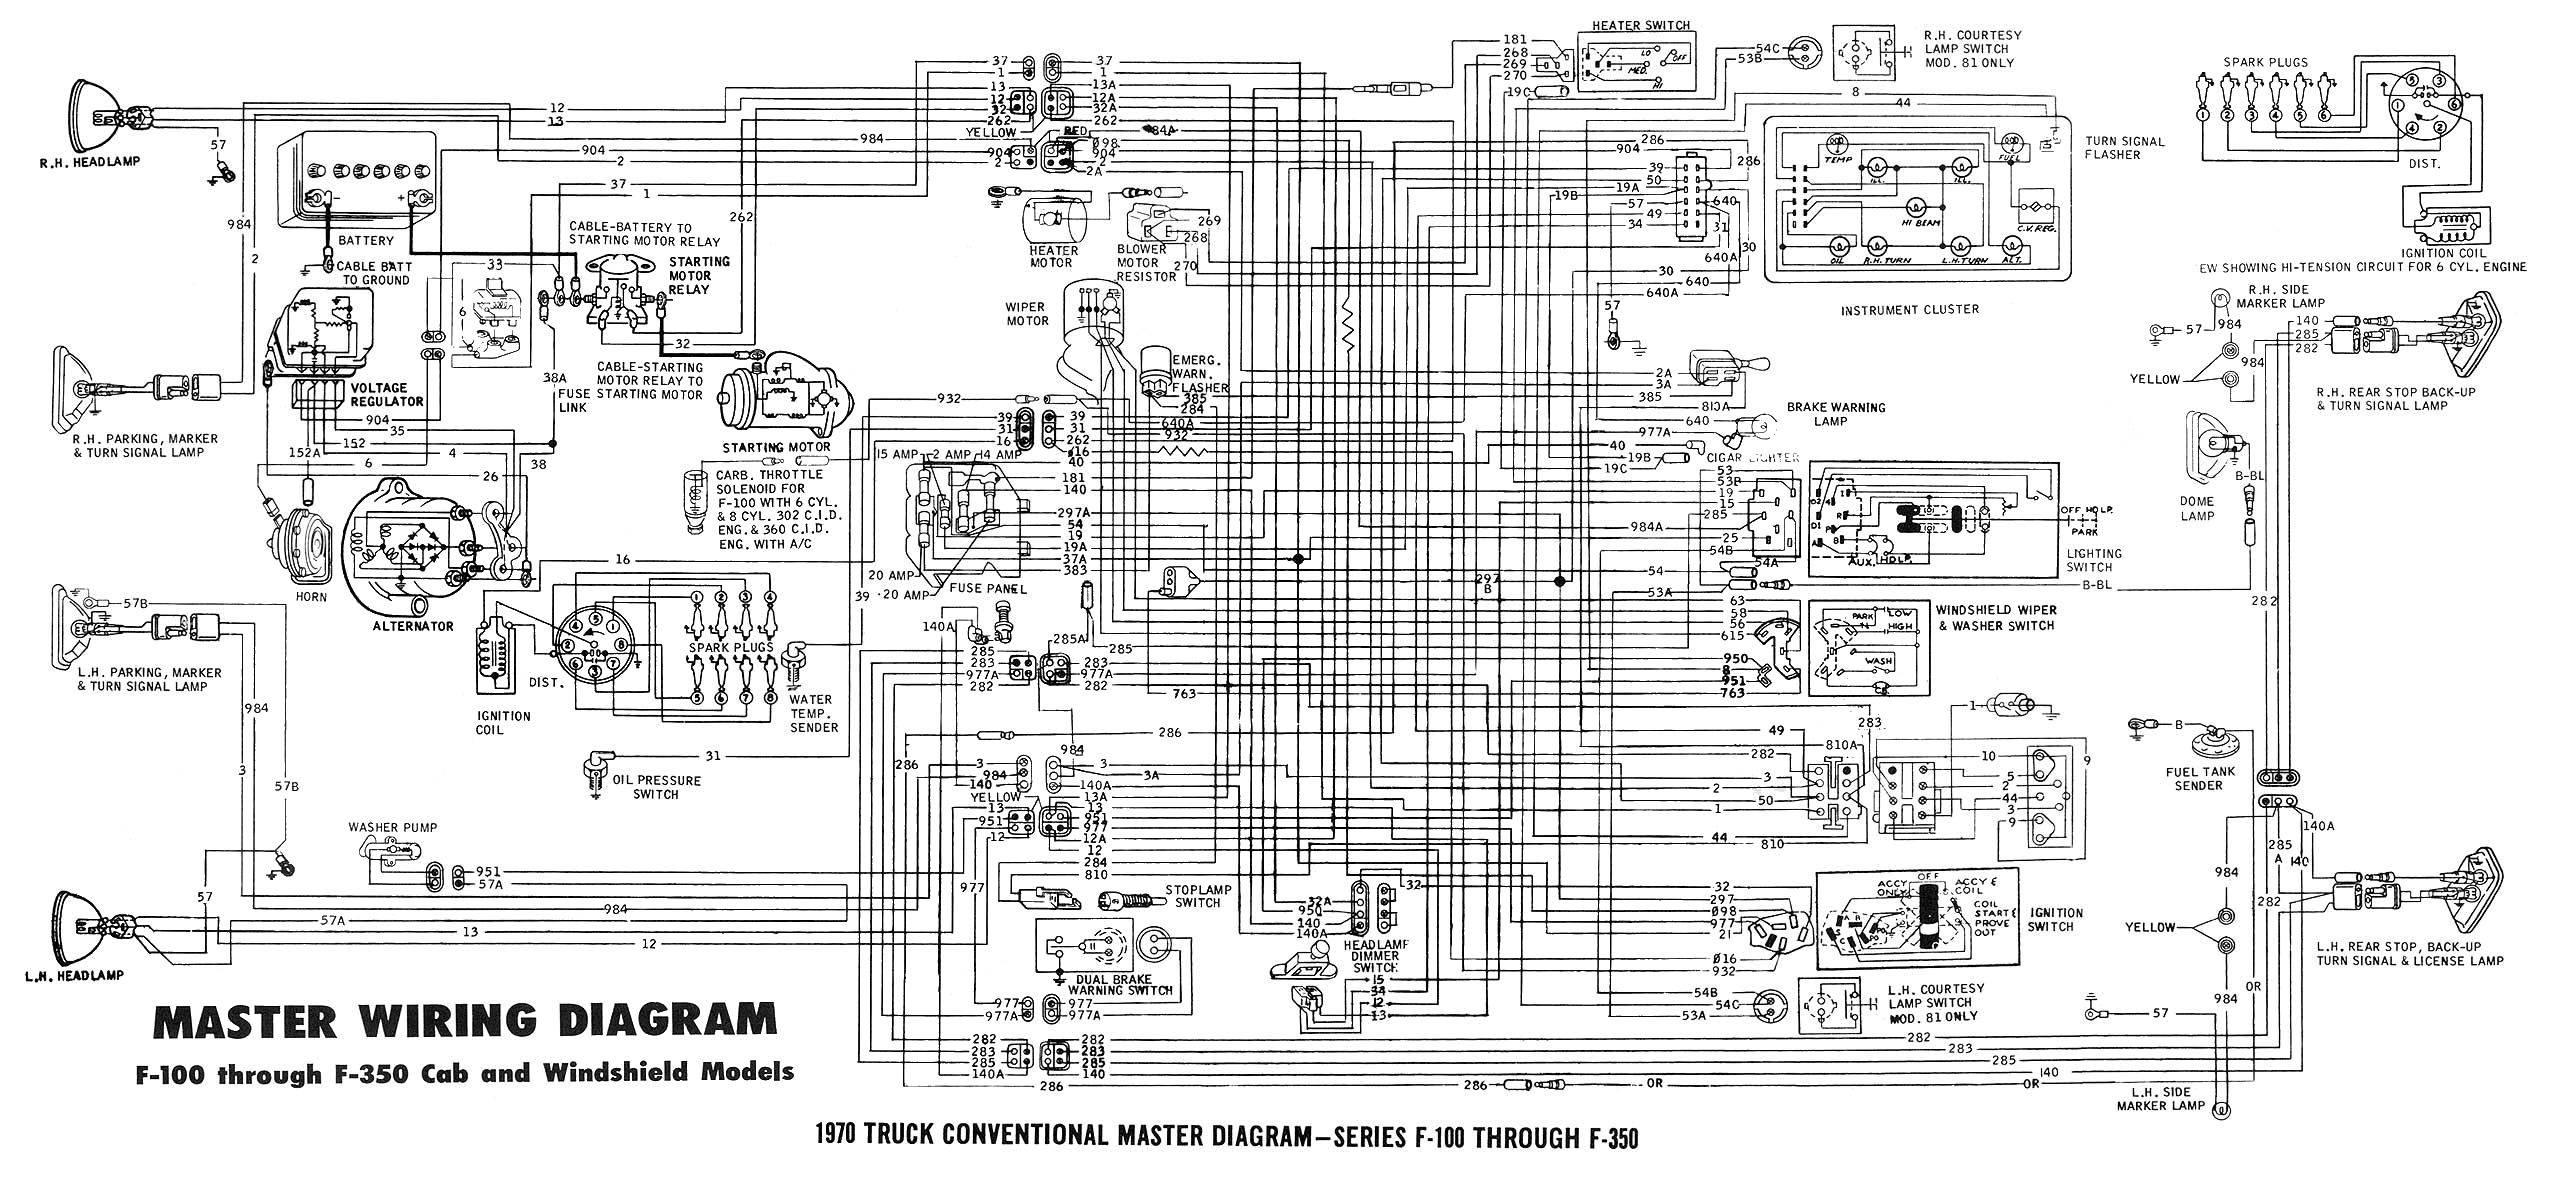 1990 ford truck wiring diagram wiring diagram for a 78 ford bronco the wiring diagram ford truck wiring diagrams ford wiring